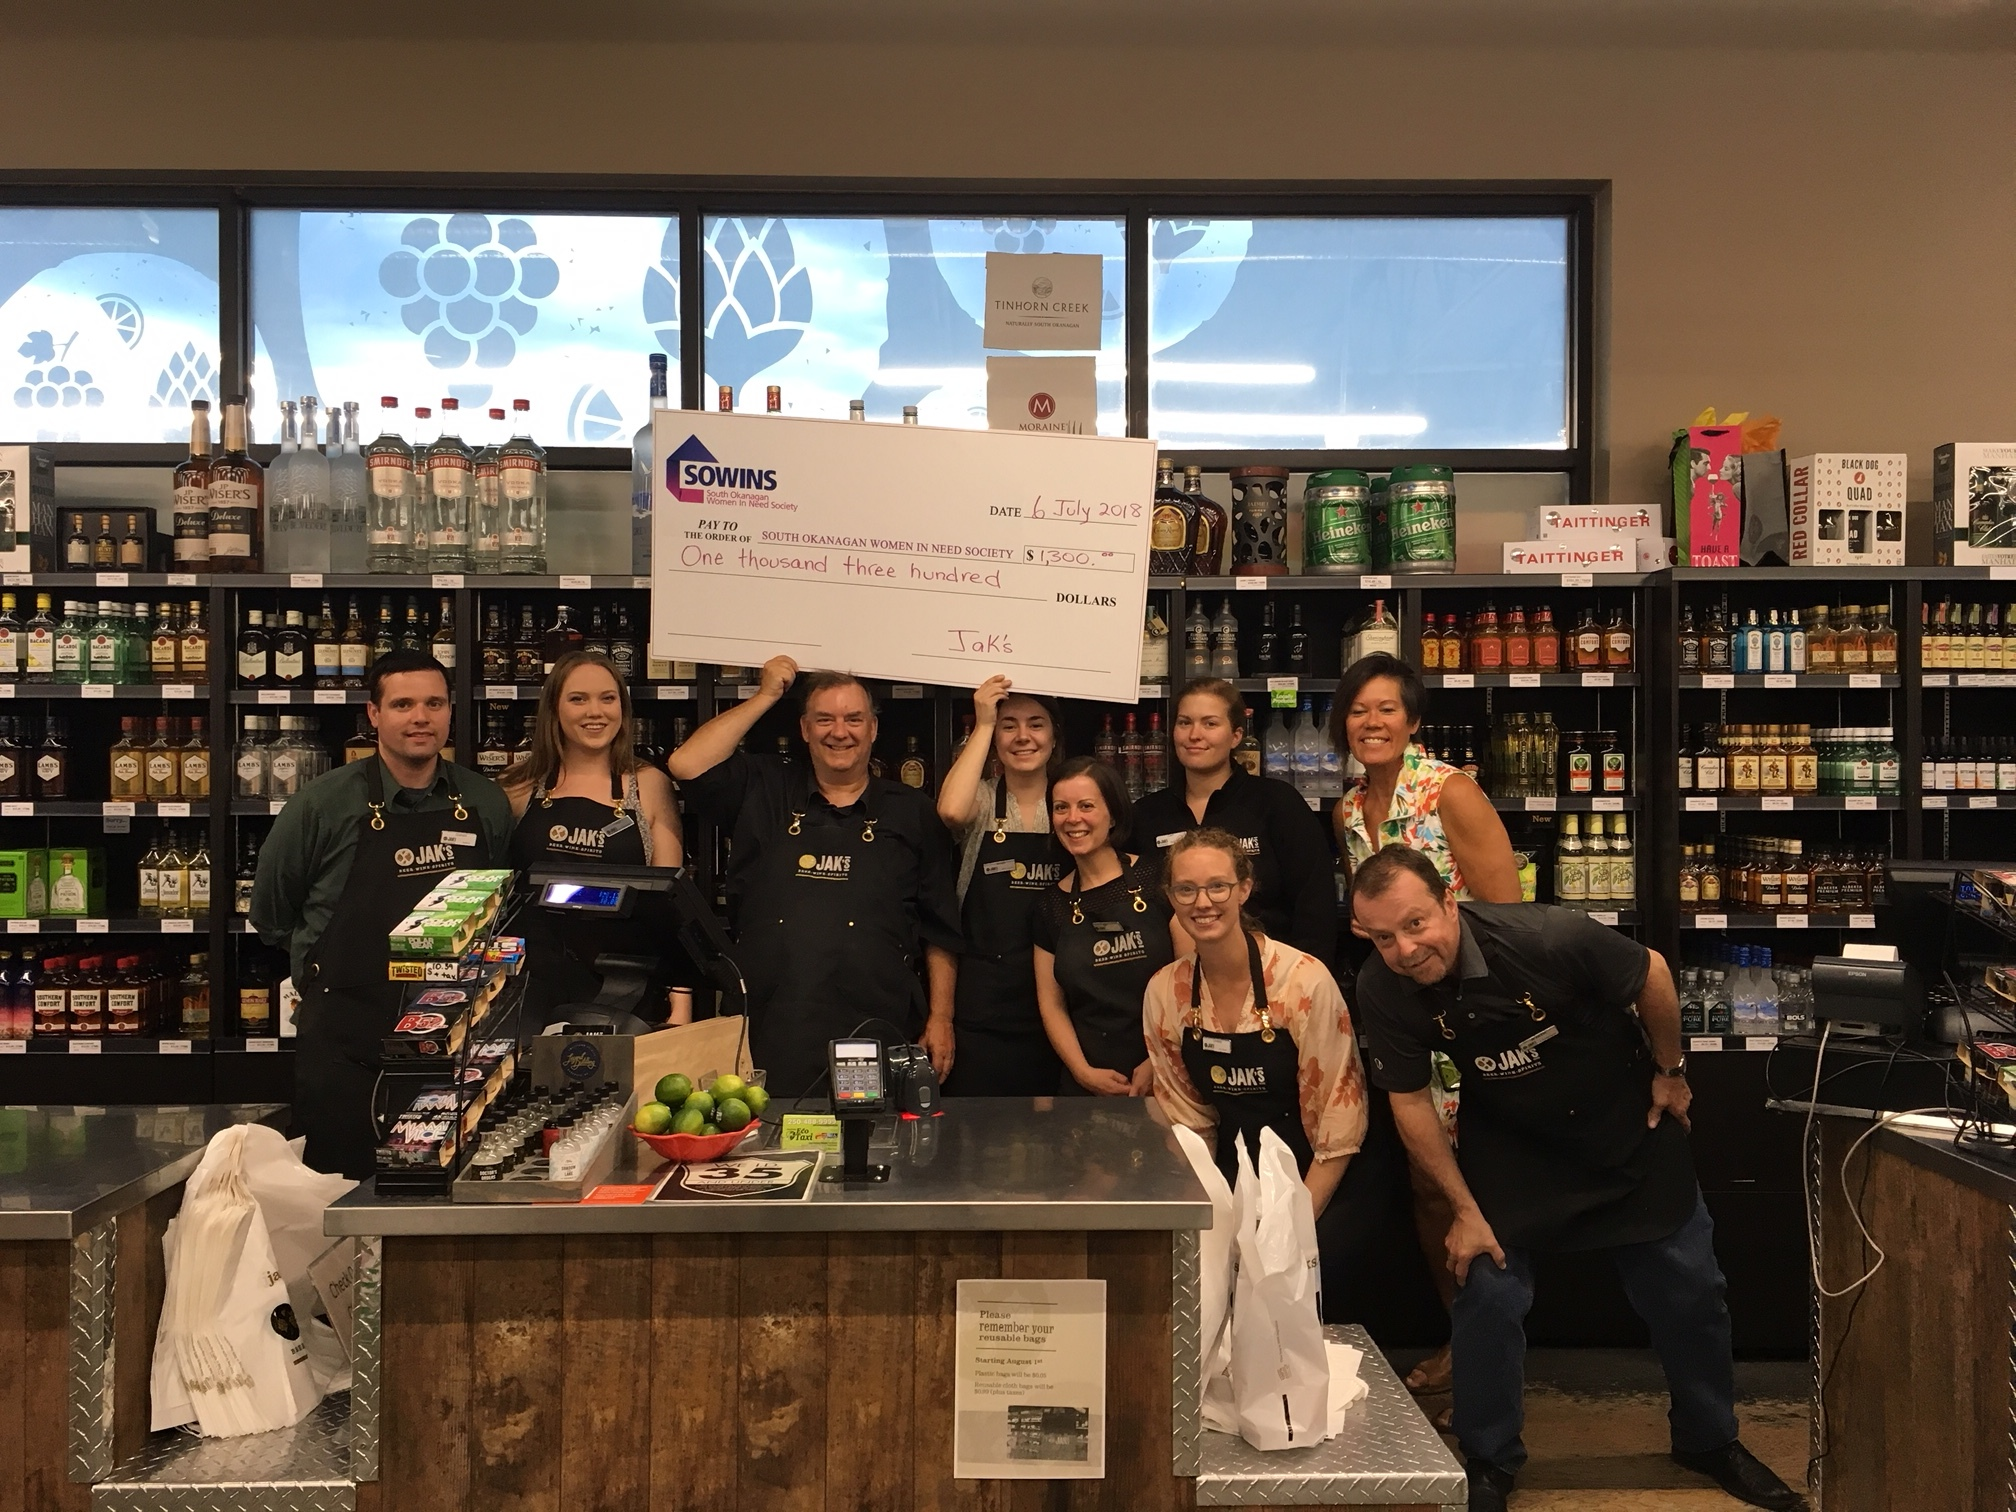 JAK'S Beer Wine Spirits' raised $1,300 from their Annual Summer Celebration for SOWINS - July 14, 2018 Penticton Western News